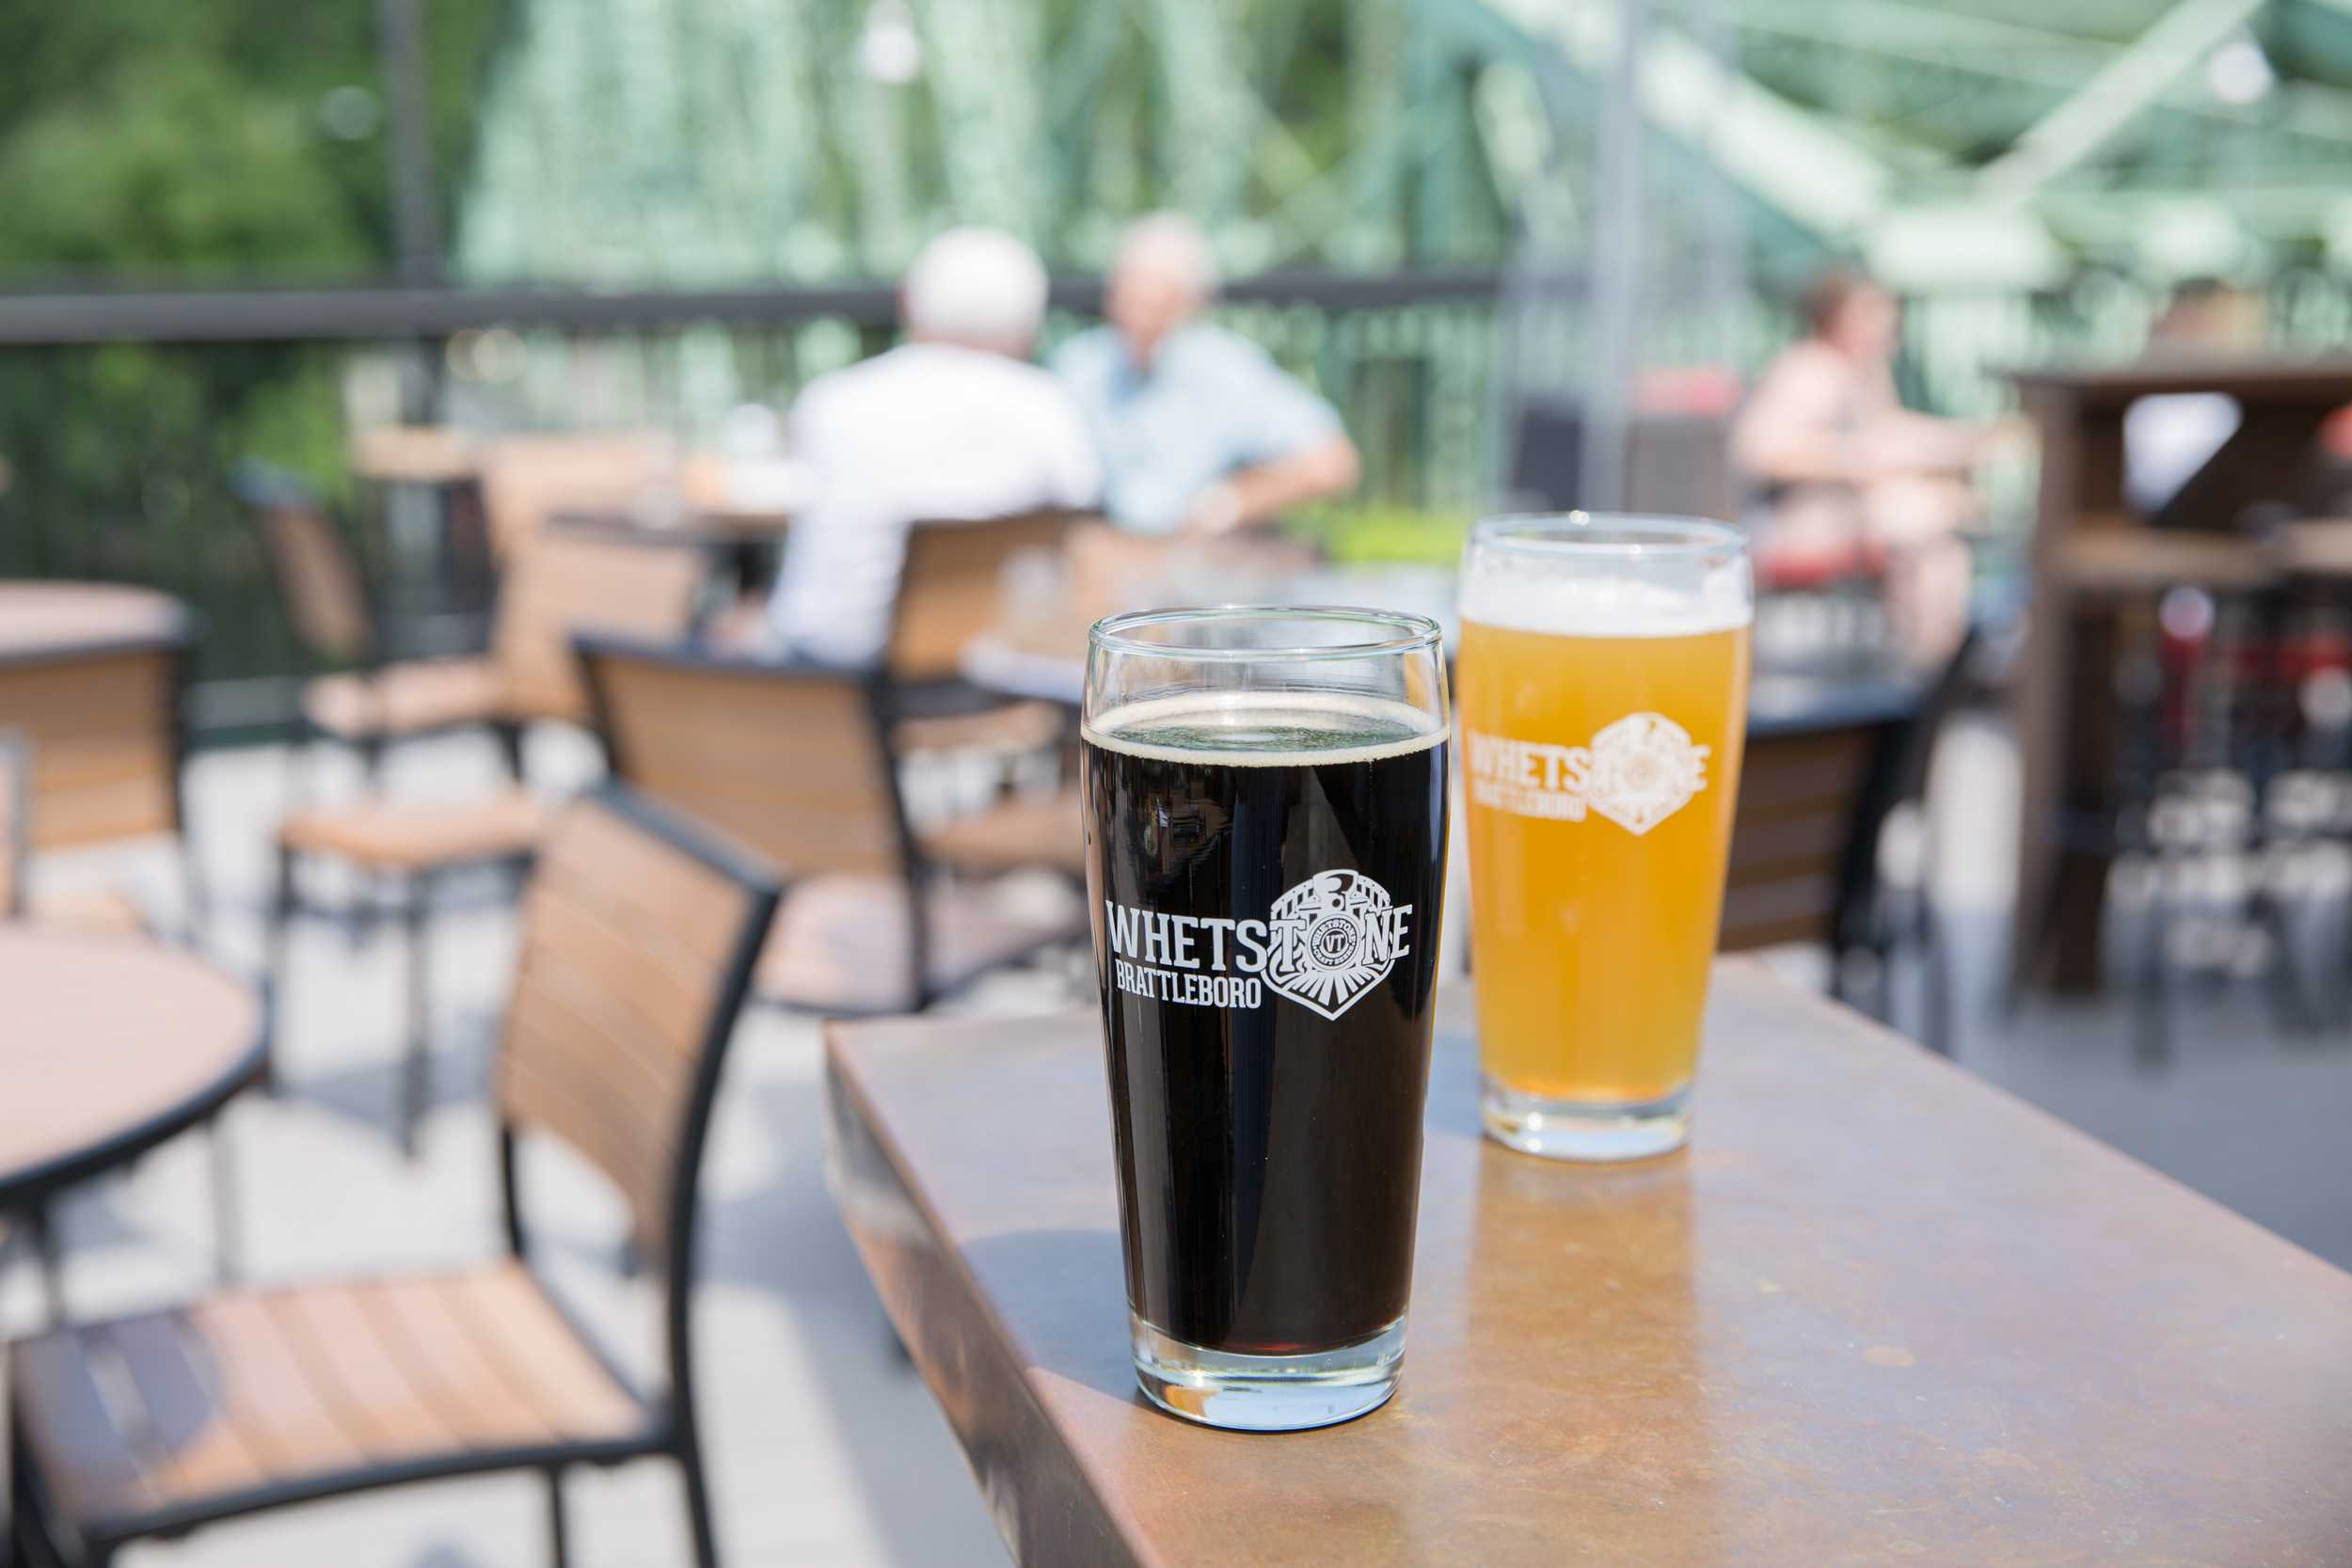 Two glasses of beer, one dark one light, on an outdoor patio at Whetstone Station Restaurant and Brewery Brattleboro Vermont